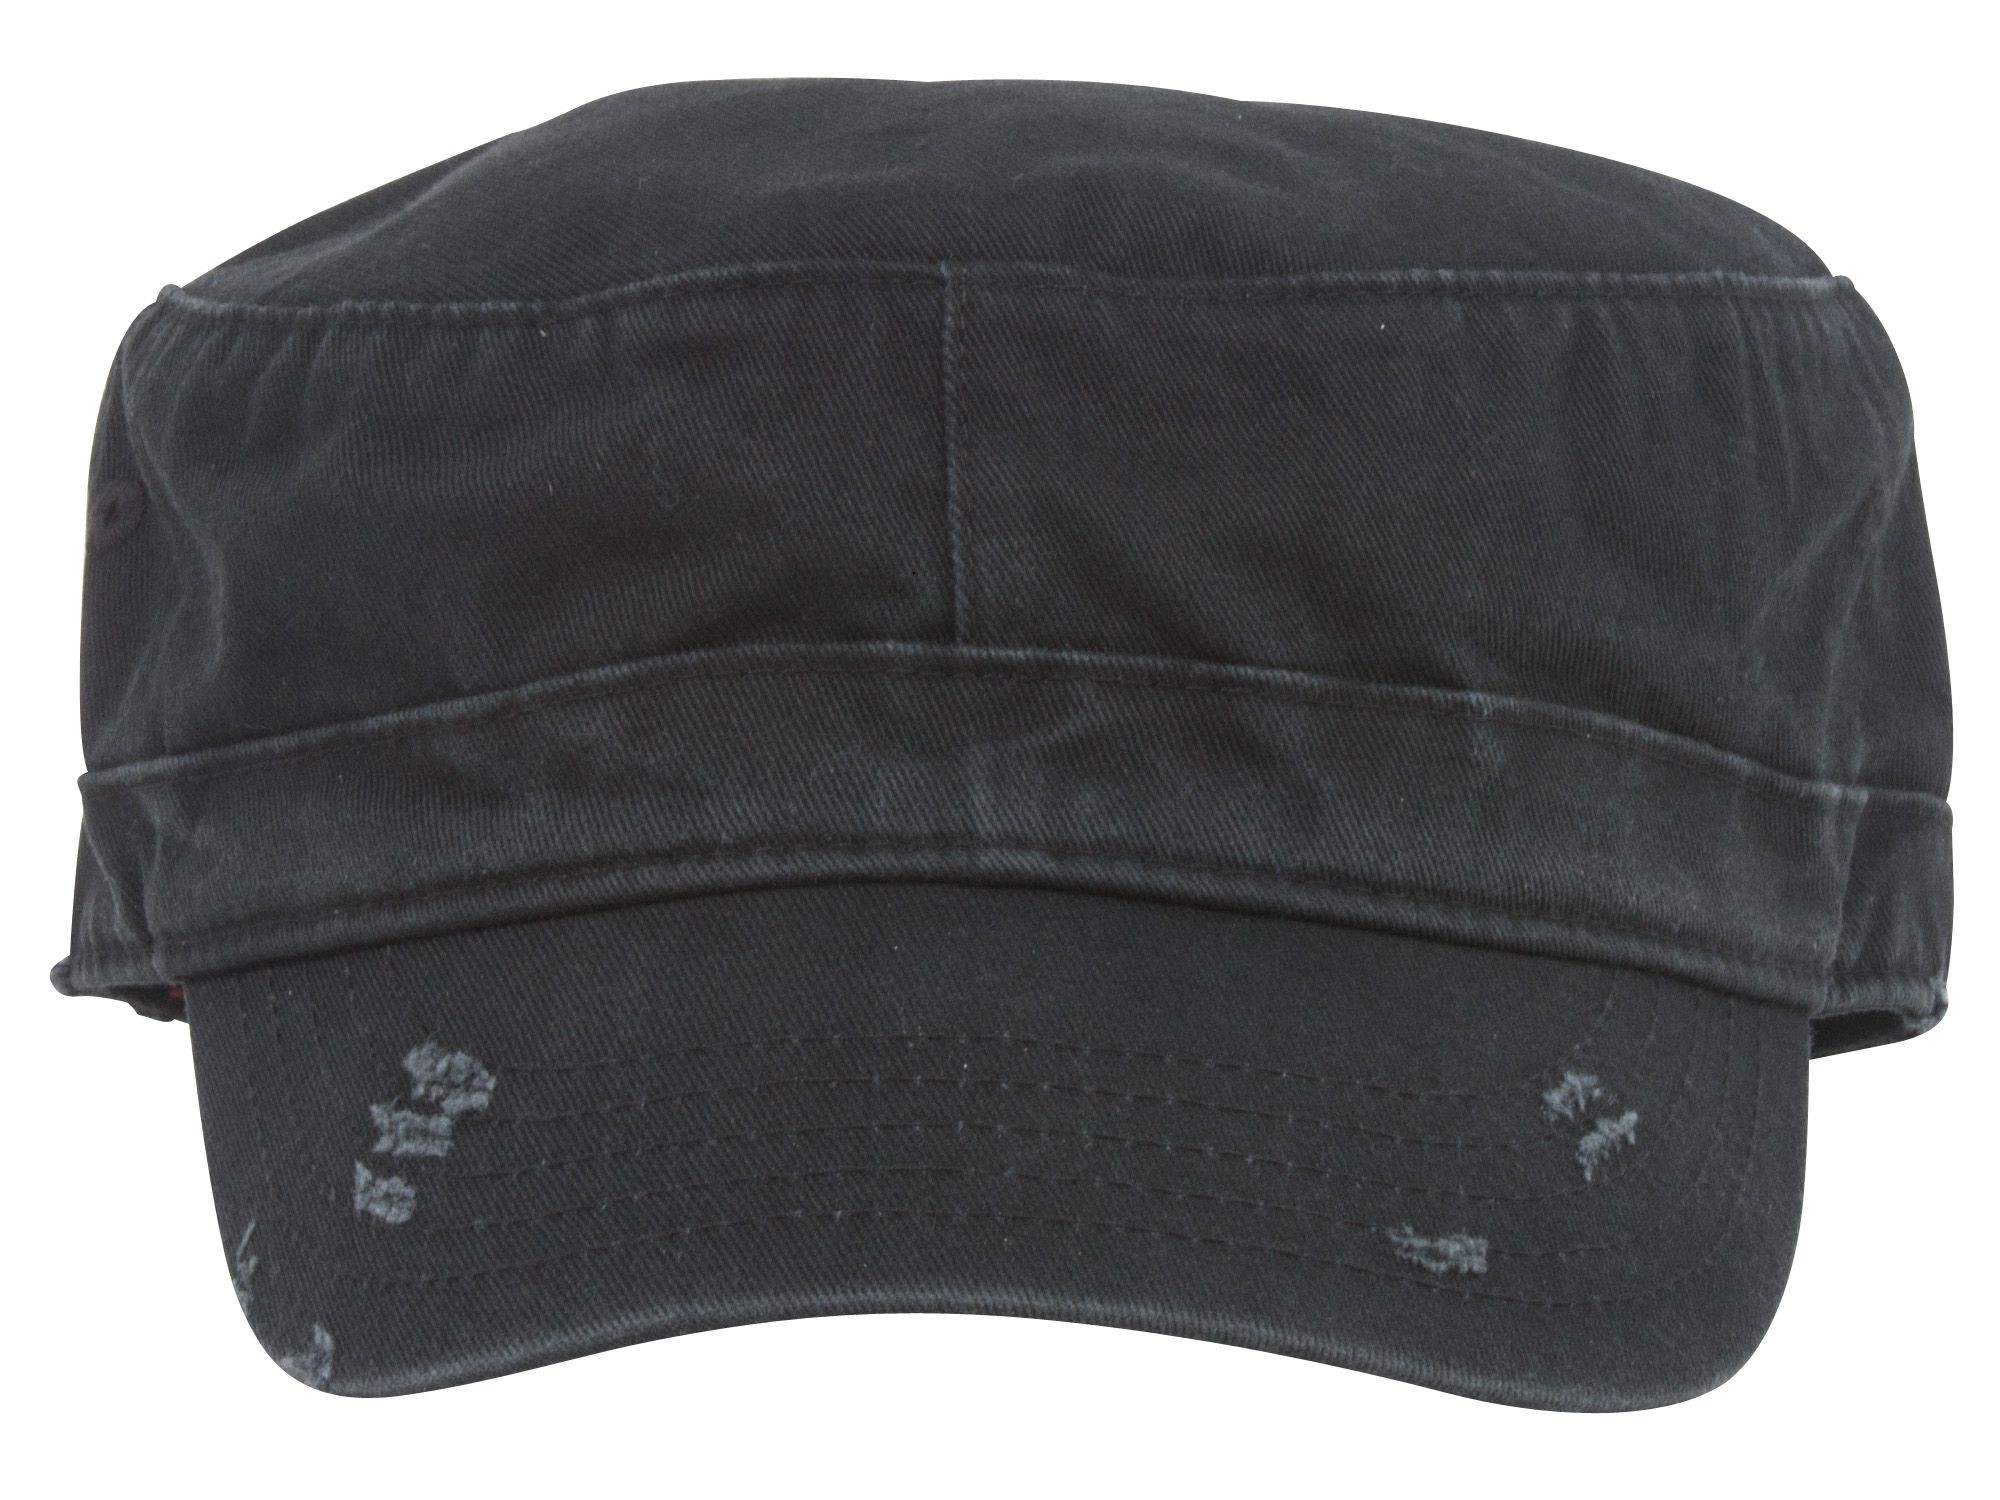 Distressed Washed Cadet Army Cap- Black